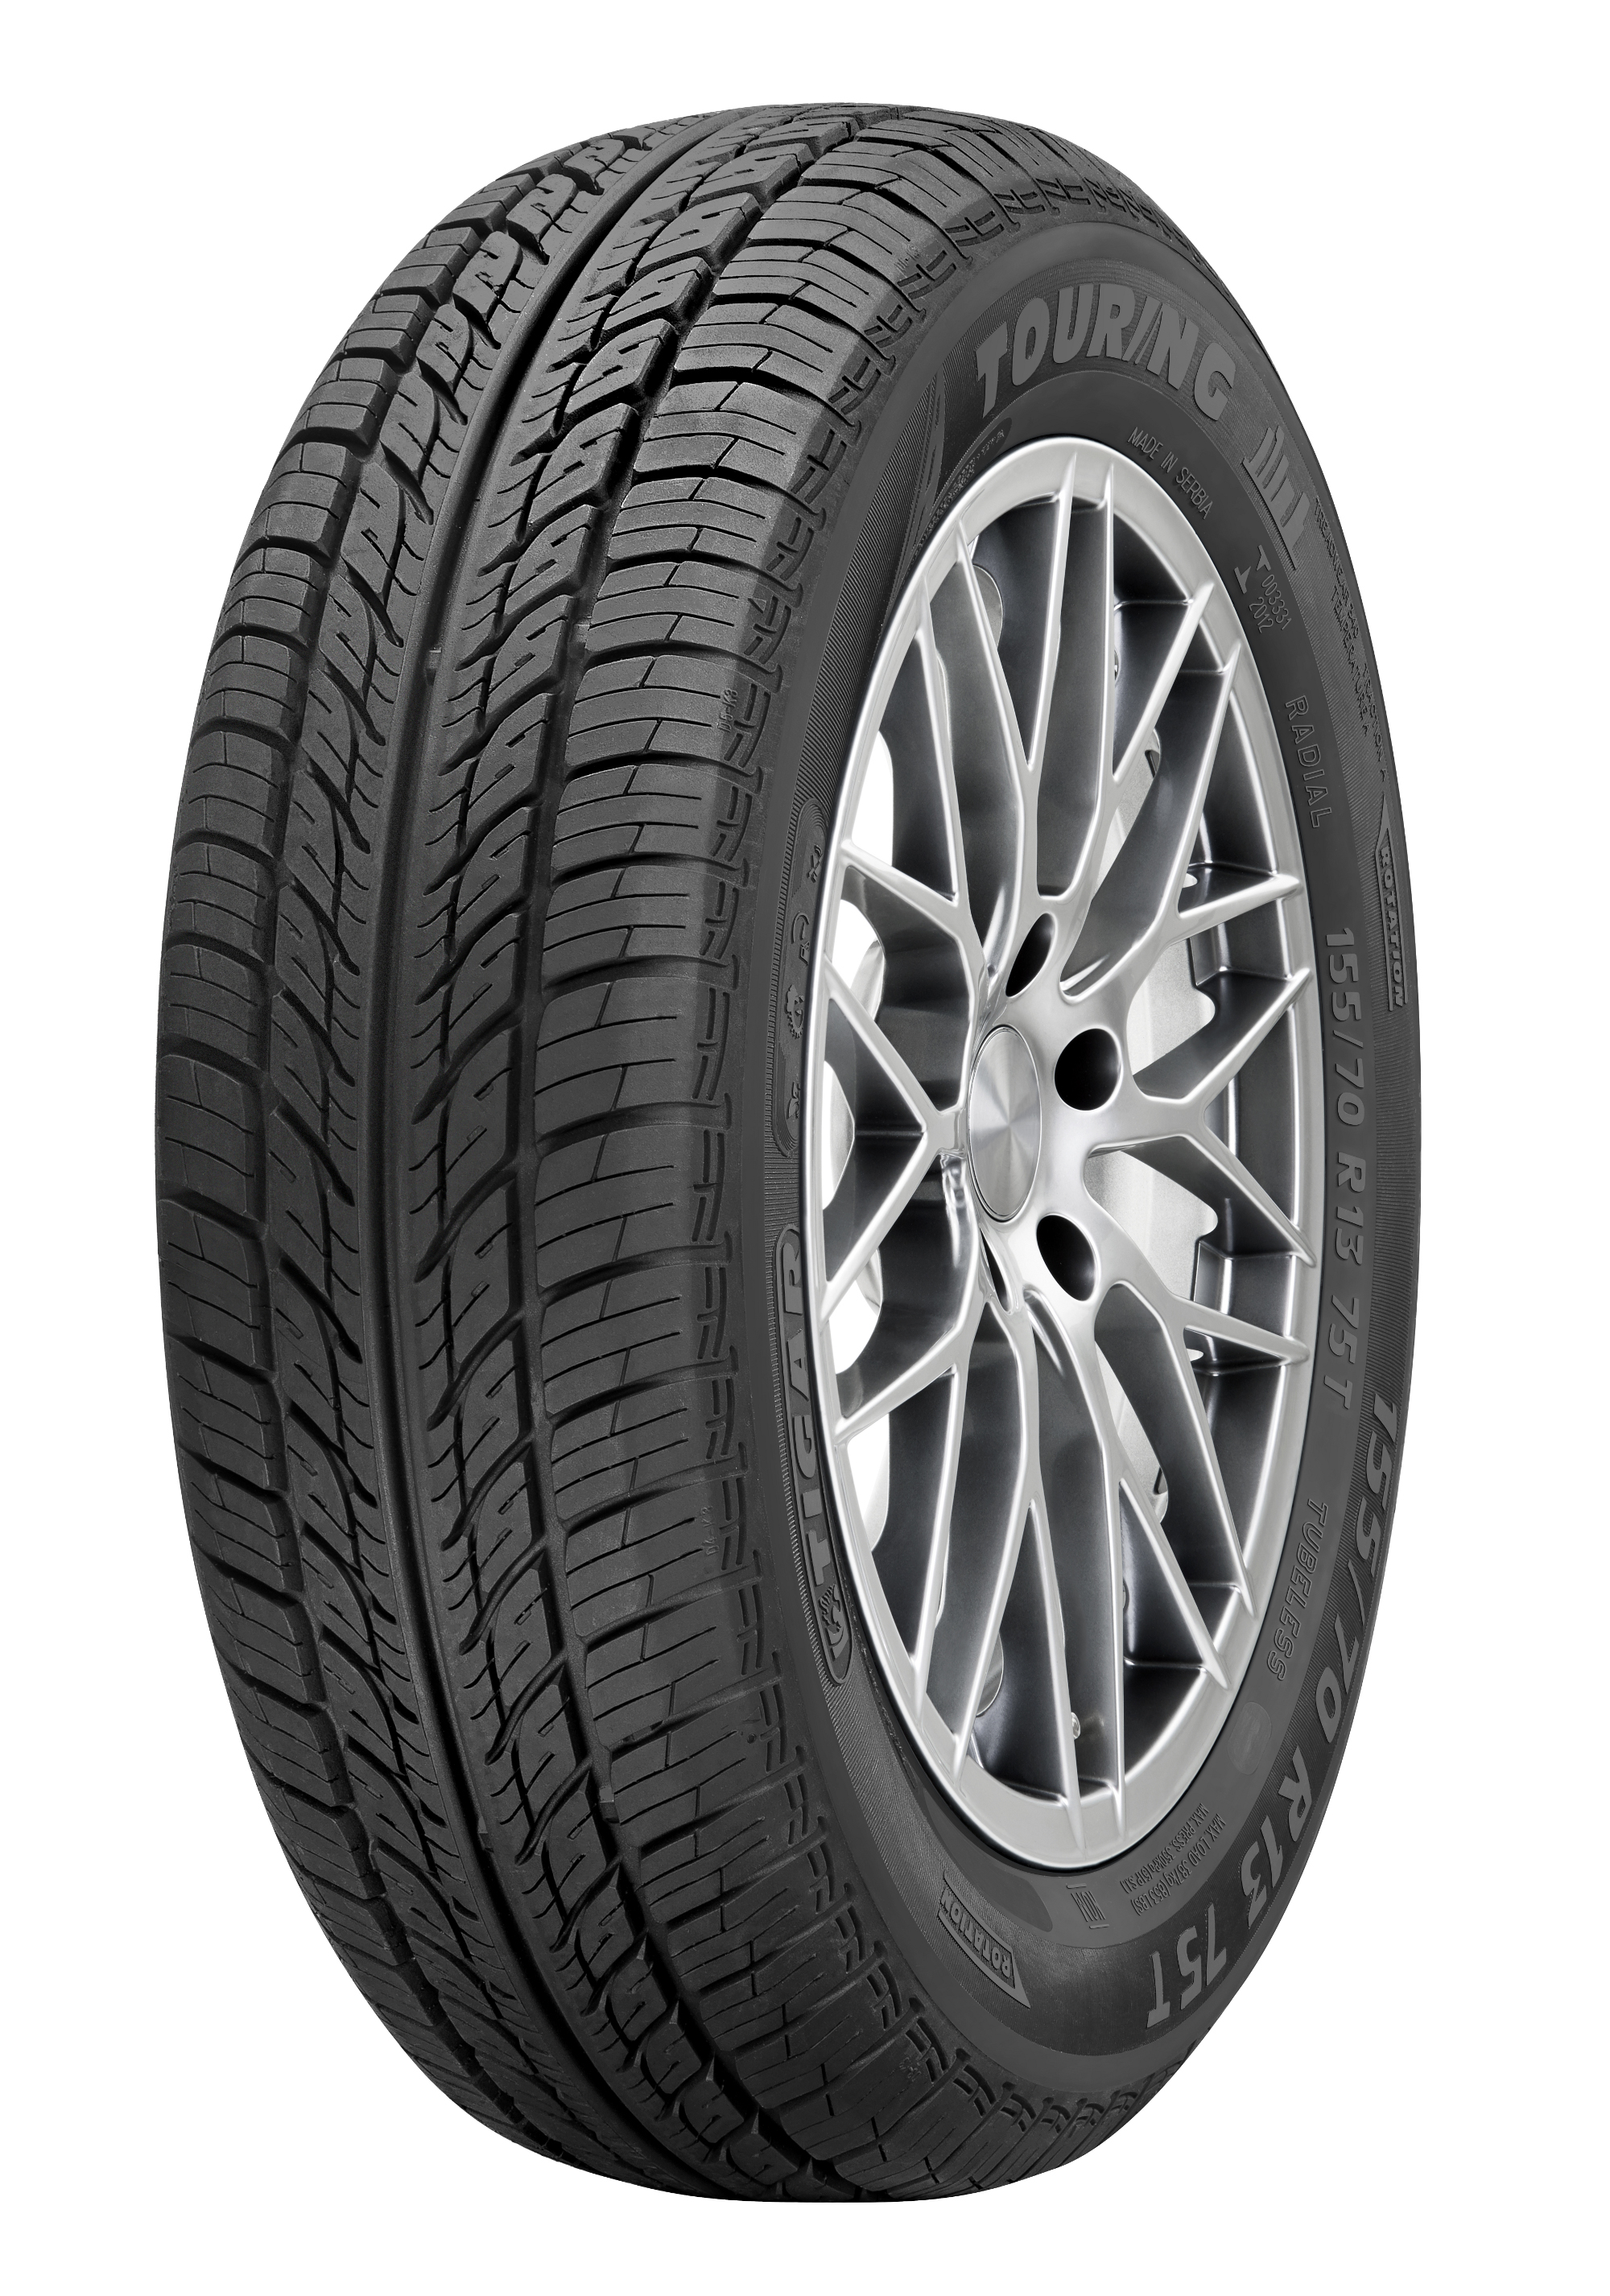 Гуми TIGAR 155/80R13 79T TL TOURING TG